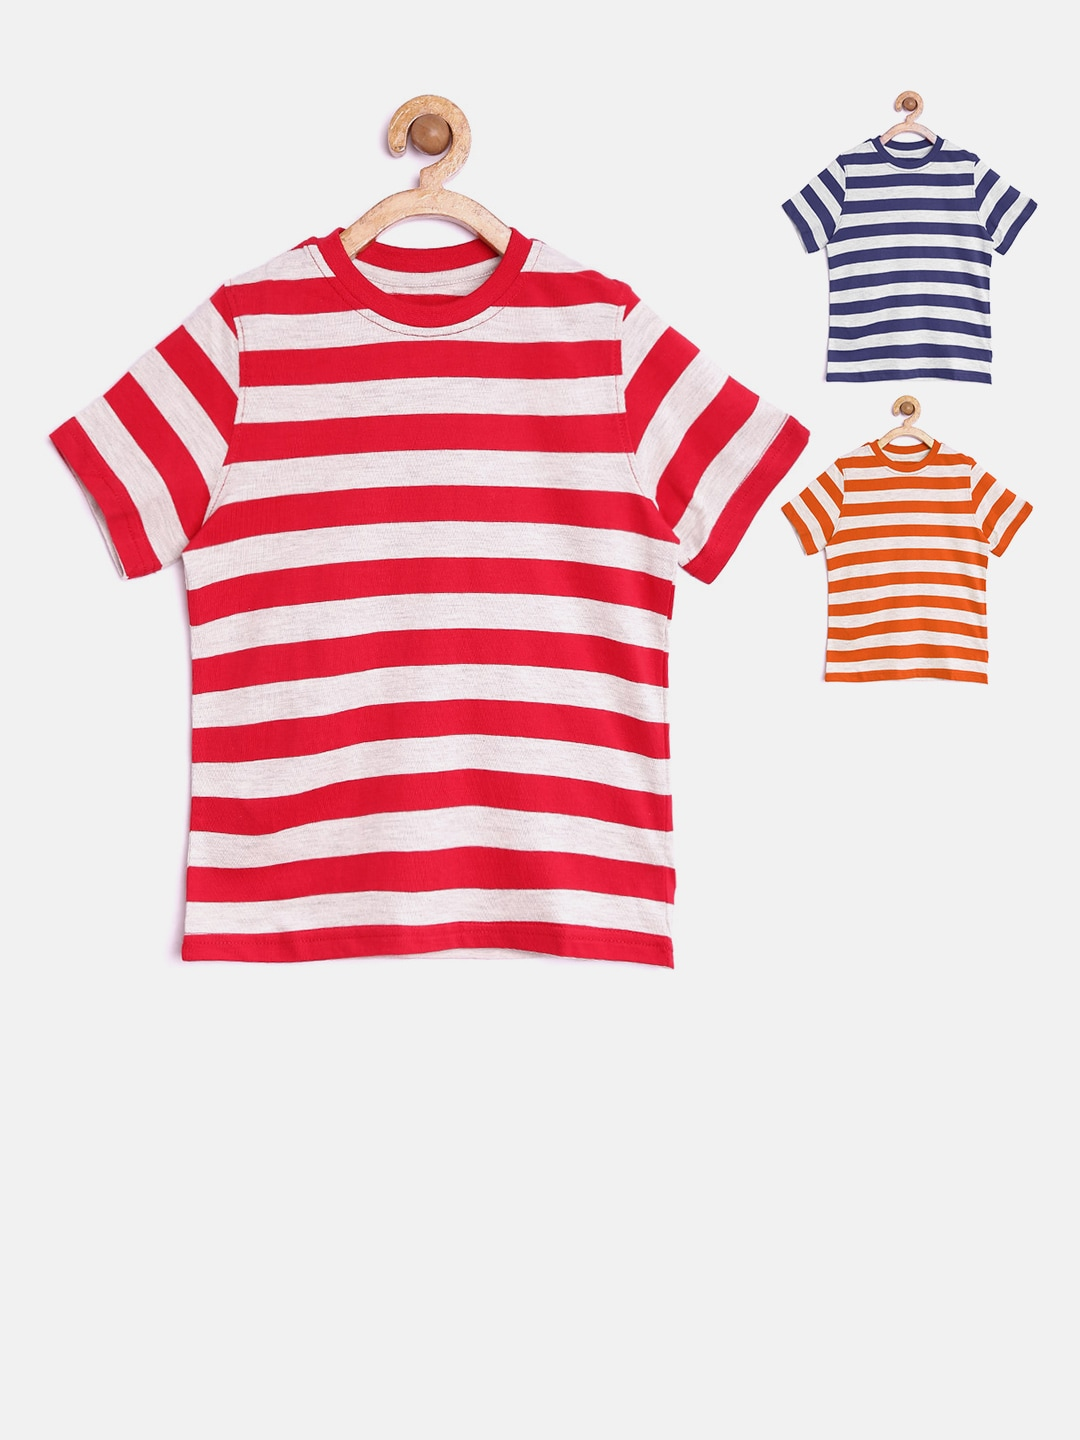 468f35d0e9 Chalk by pantaloons 110010047 Pack Of 3 Boys Striped Round Neck T Shirts-  Price in India